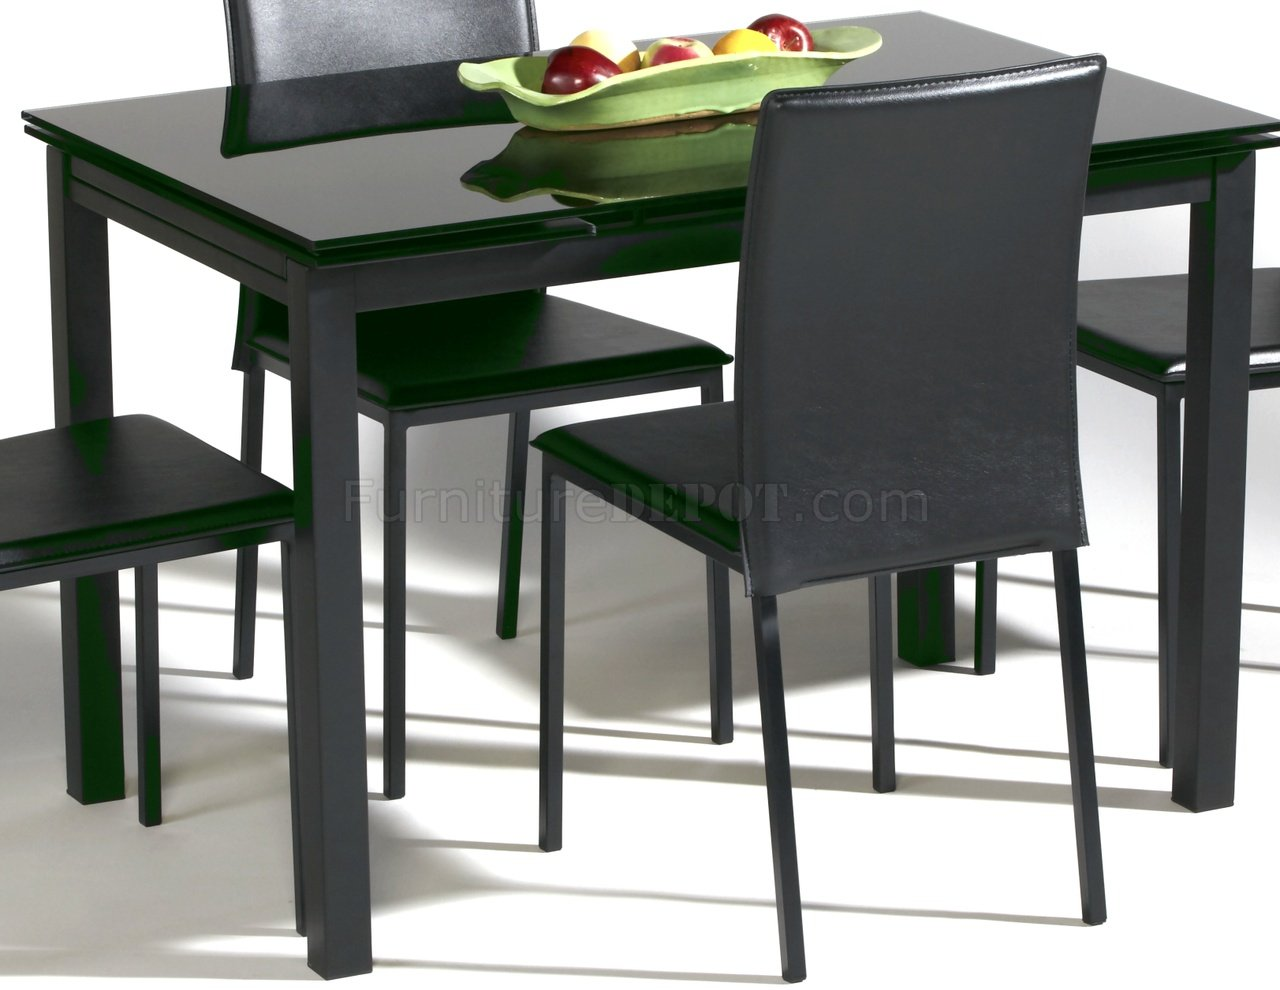 Black Glass Top Modern Dining Table W/Optional Chairs